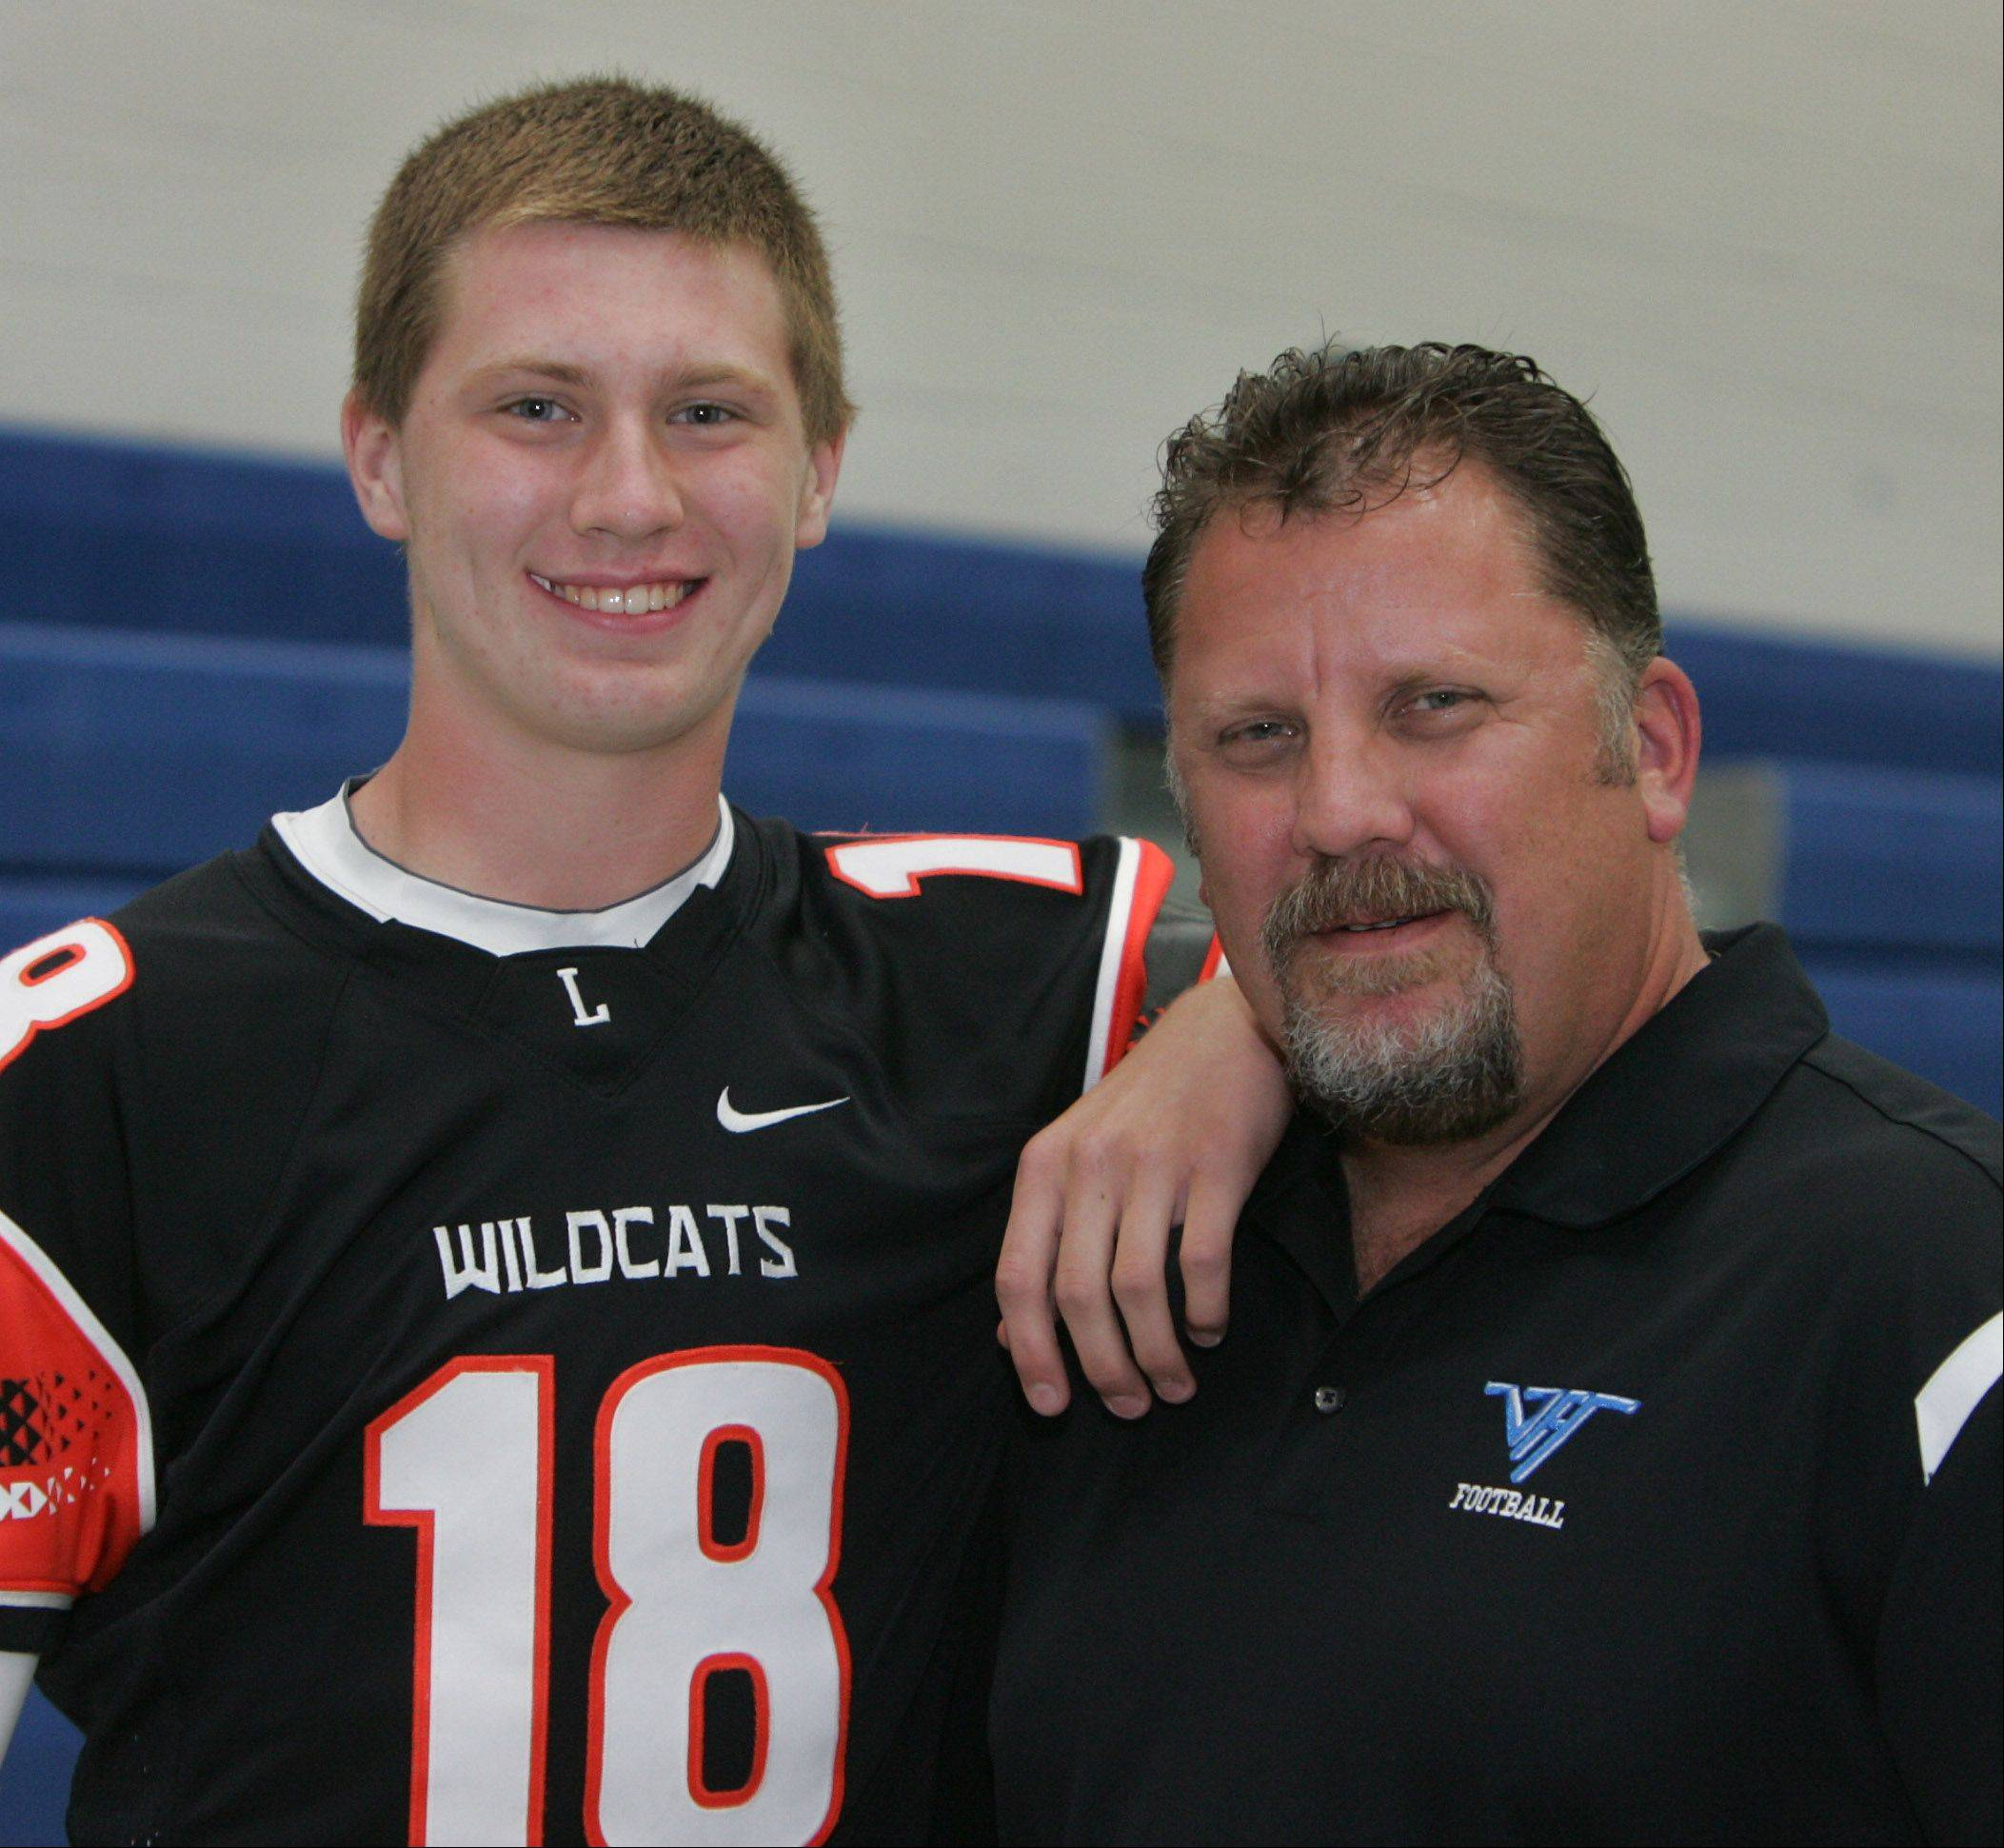 Vernon Hills football coach Tony Monken, right, with his son, Anthony, who plays for Libertyville.